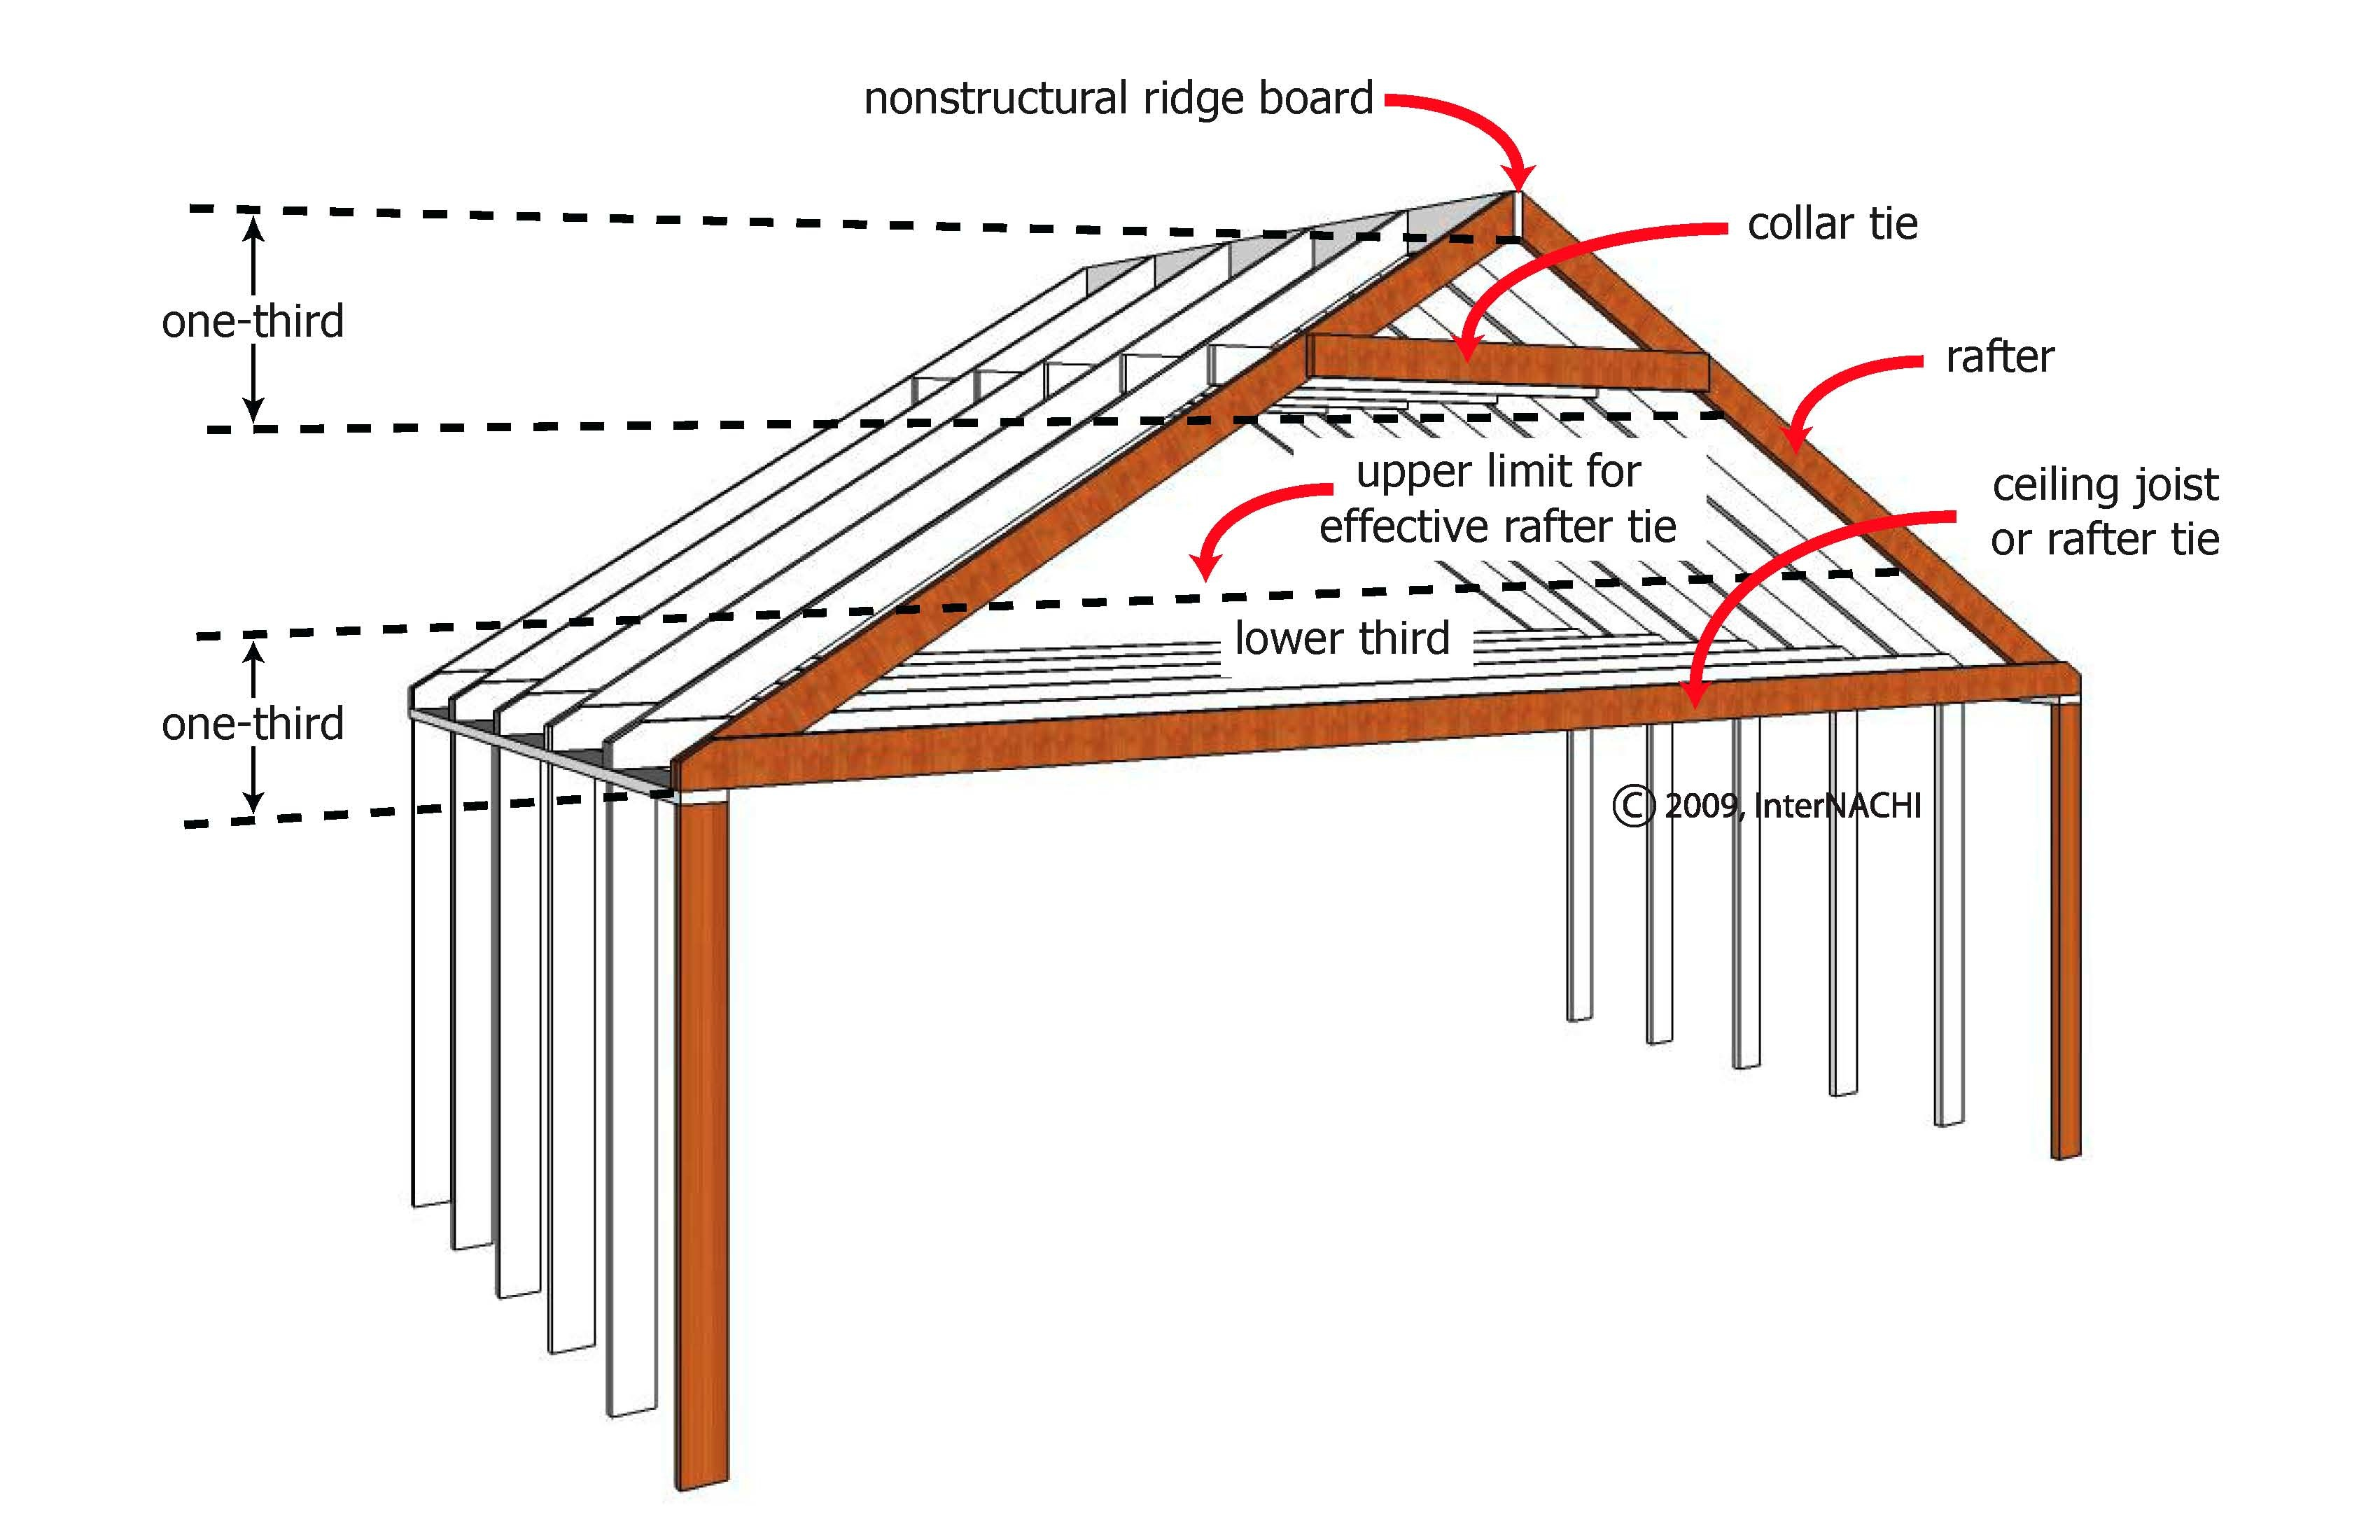 Collar and rafter ties.